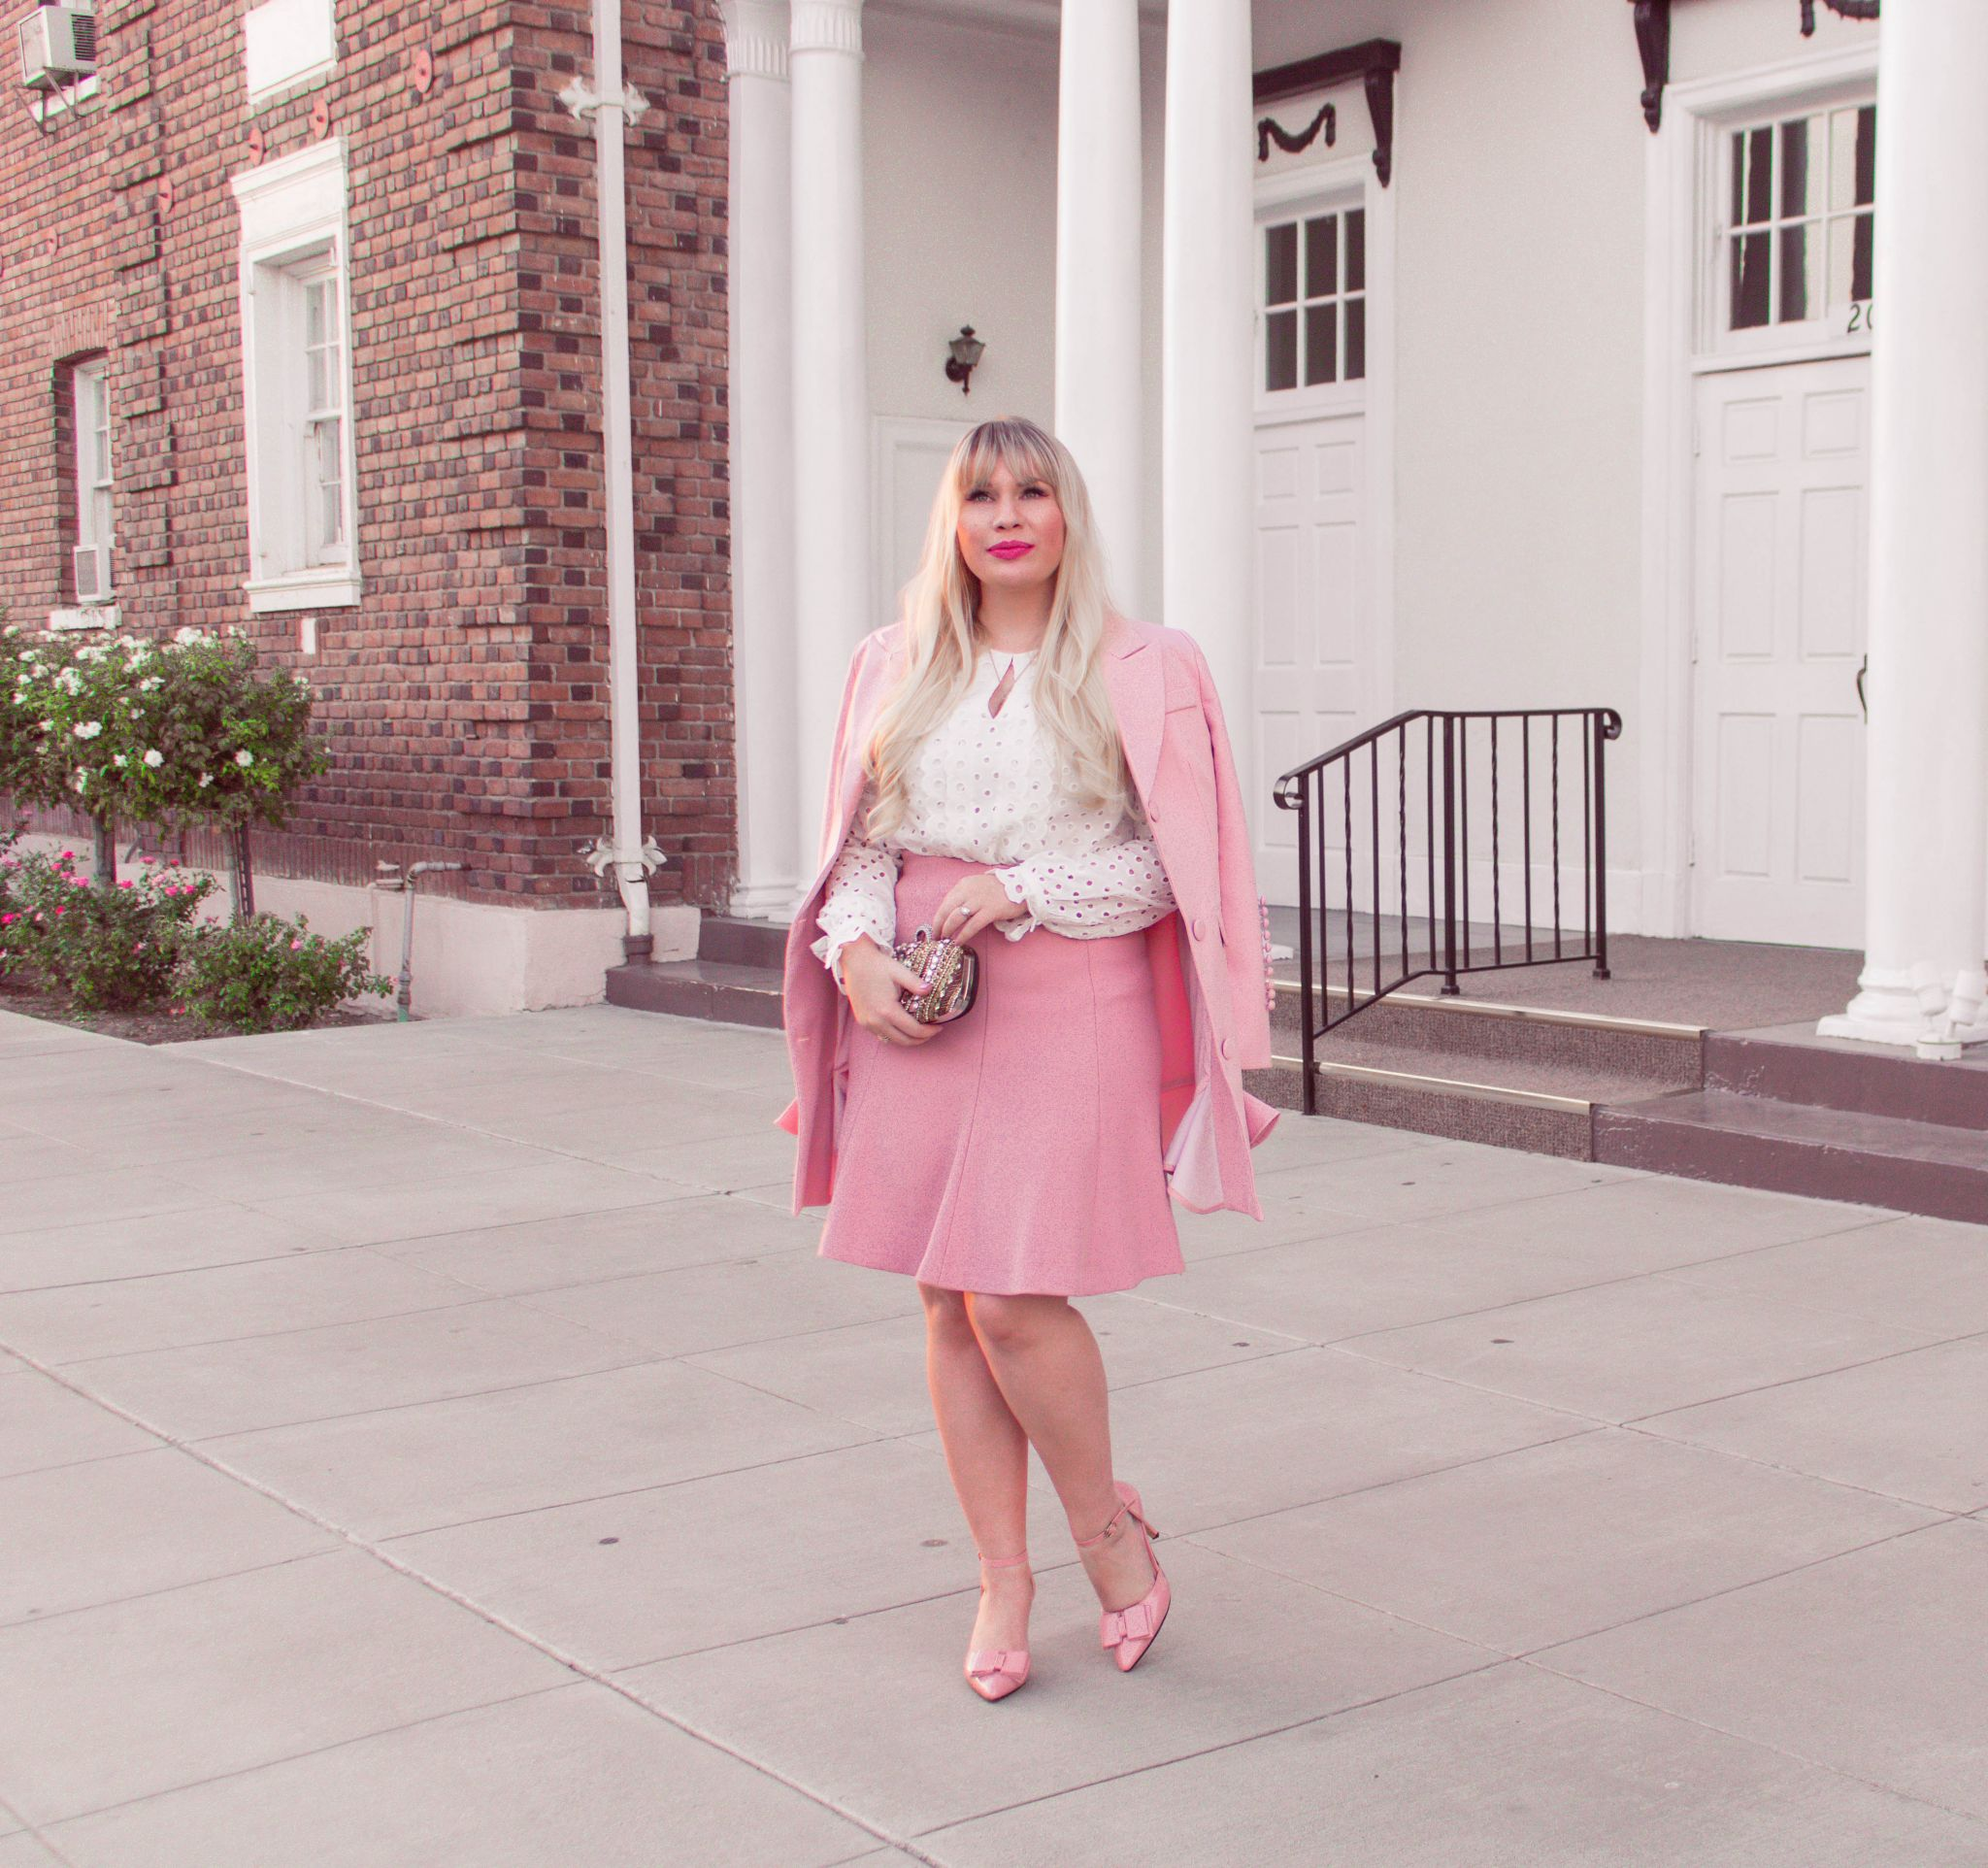 5 Tips to Make a Pink Outfit Look Sophisticated